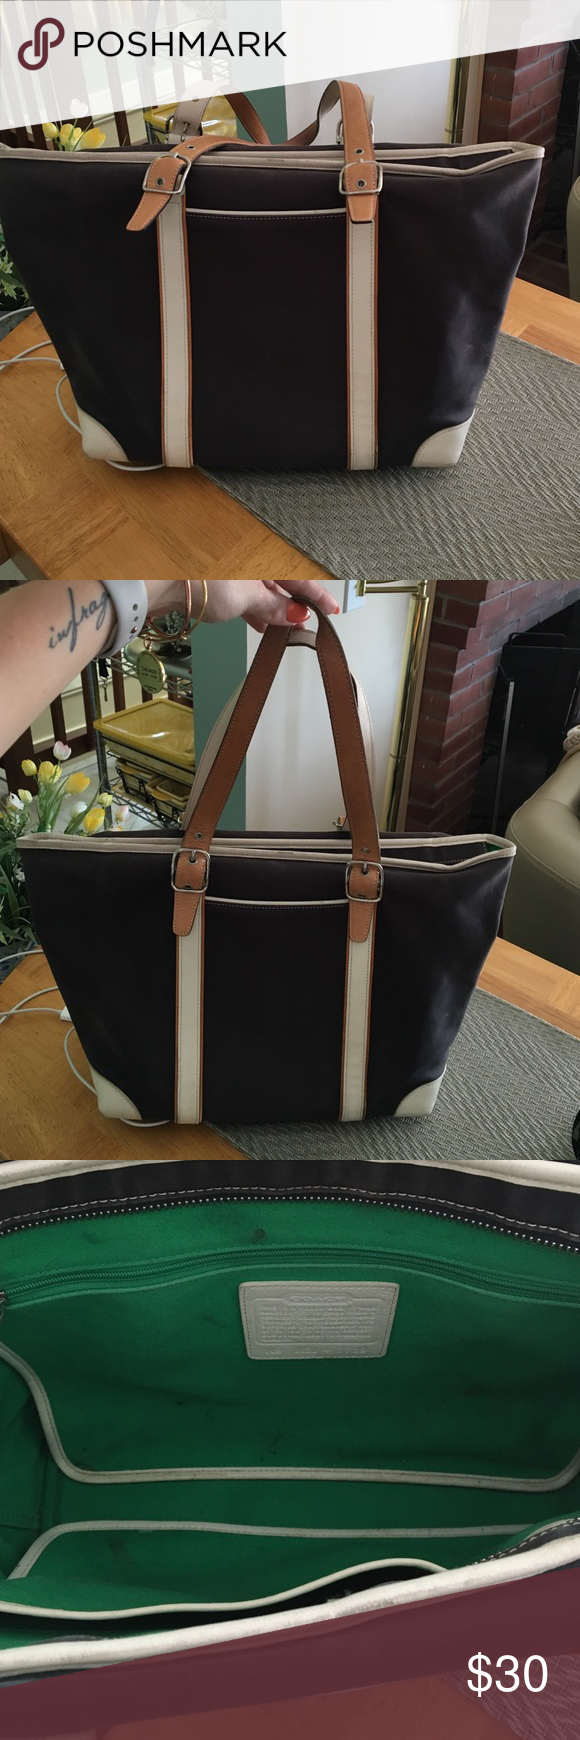 """Coach tote bag Navy blue/cream/tan. Lines in Kelley green. Tote bag. Some staining in the insides. Could be removed with cleaner. Other than that good bag. Zip closure. Inside zip pocket. In side pouches. Front pocket. 17.5""""w x 10.5""""h. 9.5"""" handle drop. Coach Bags Totes"""